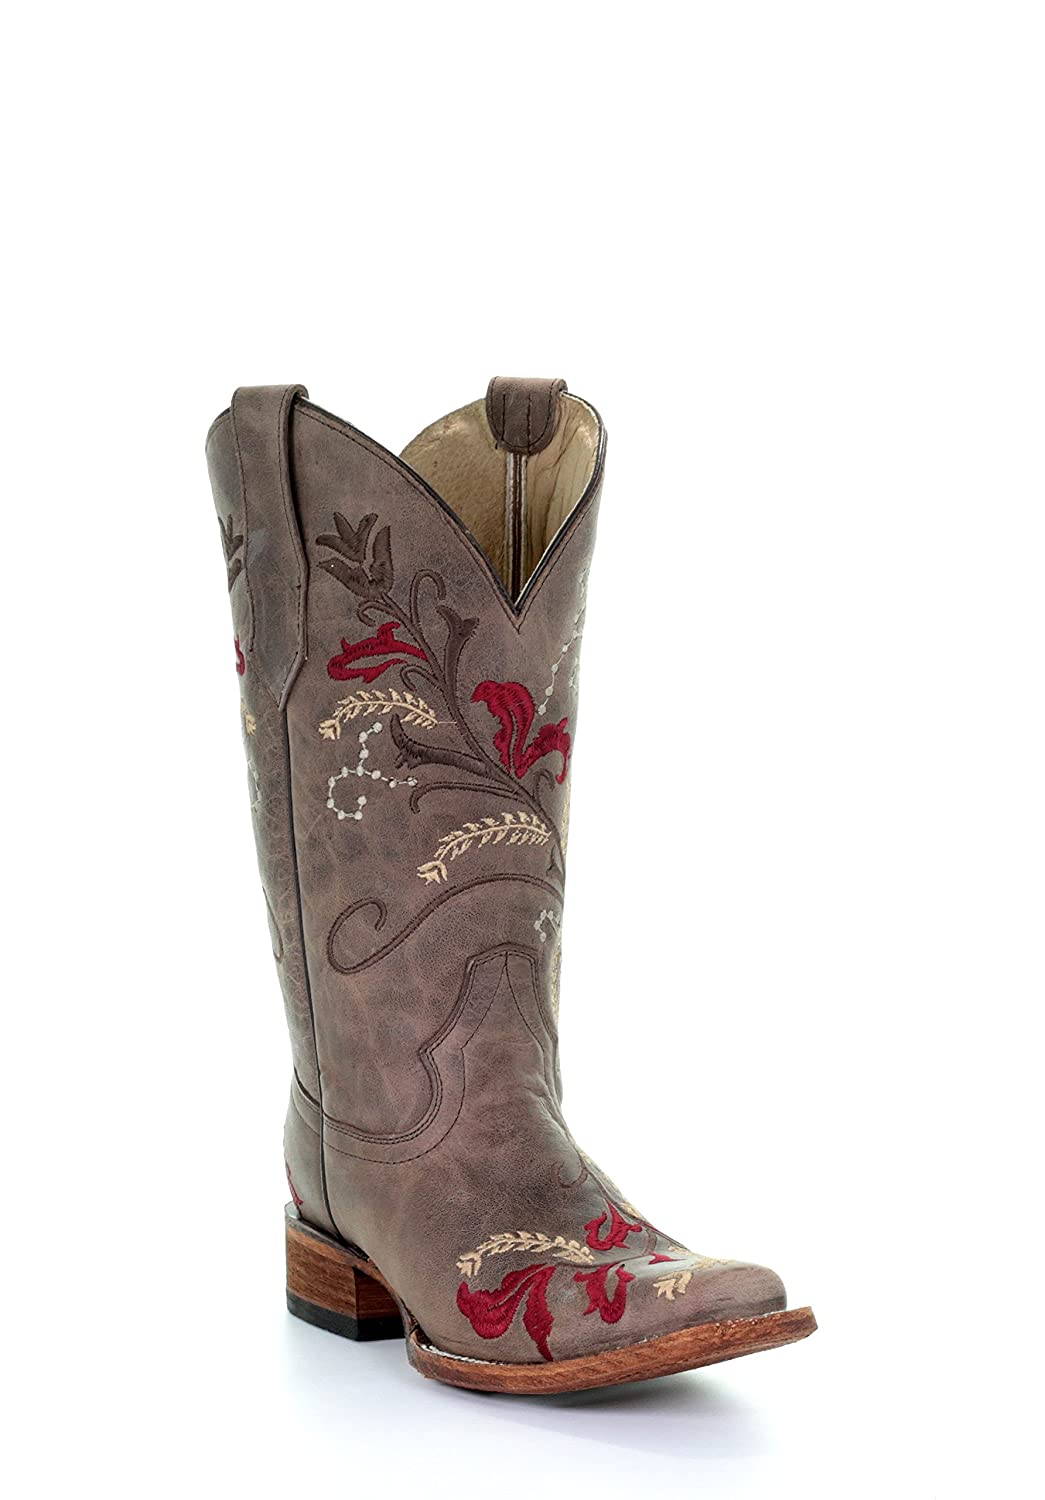 c8152512a87 Details about Corral Circle G Women's Floral Embroidery Square Toe Leather  Cowgirl Boots -...